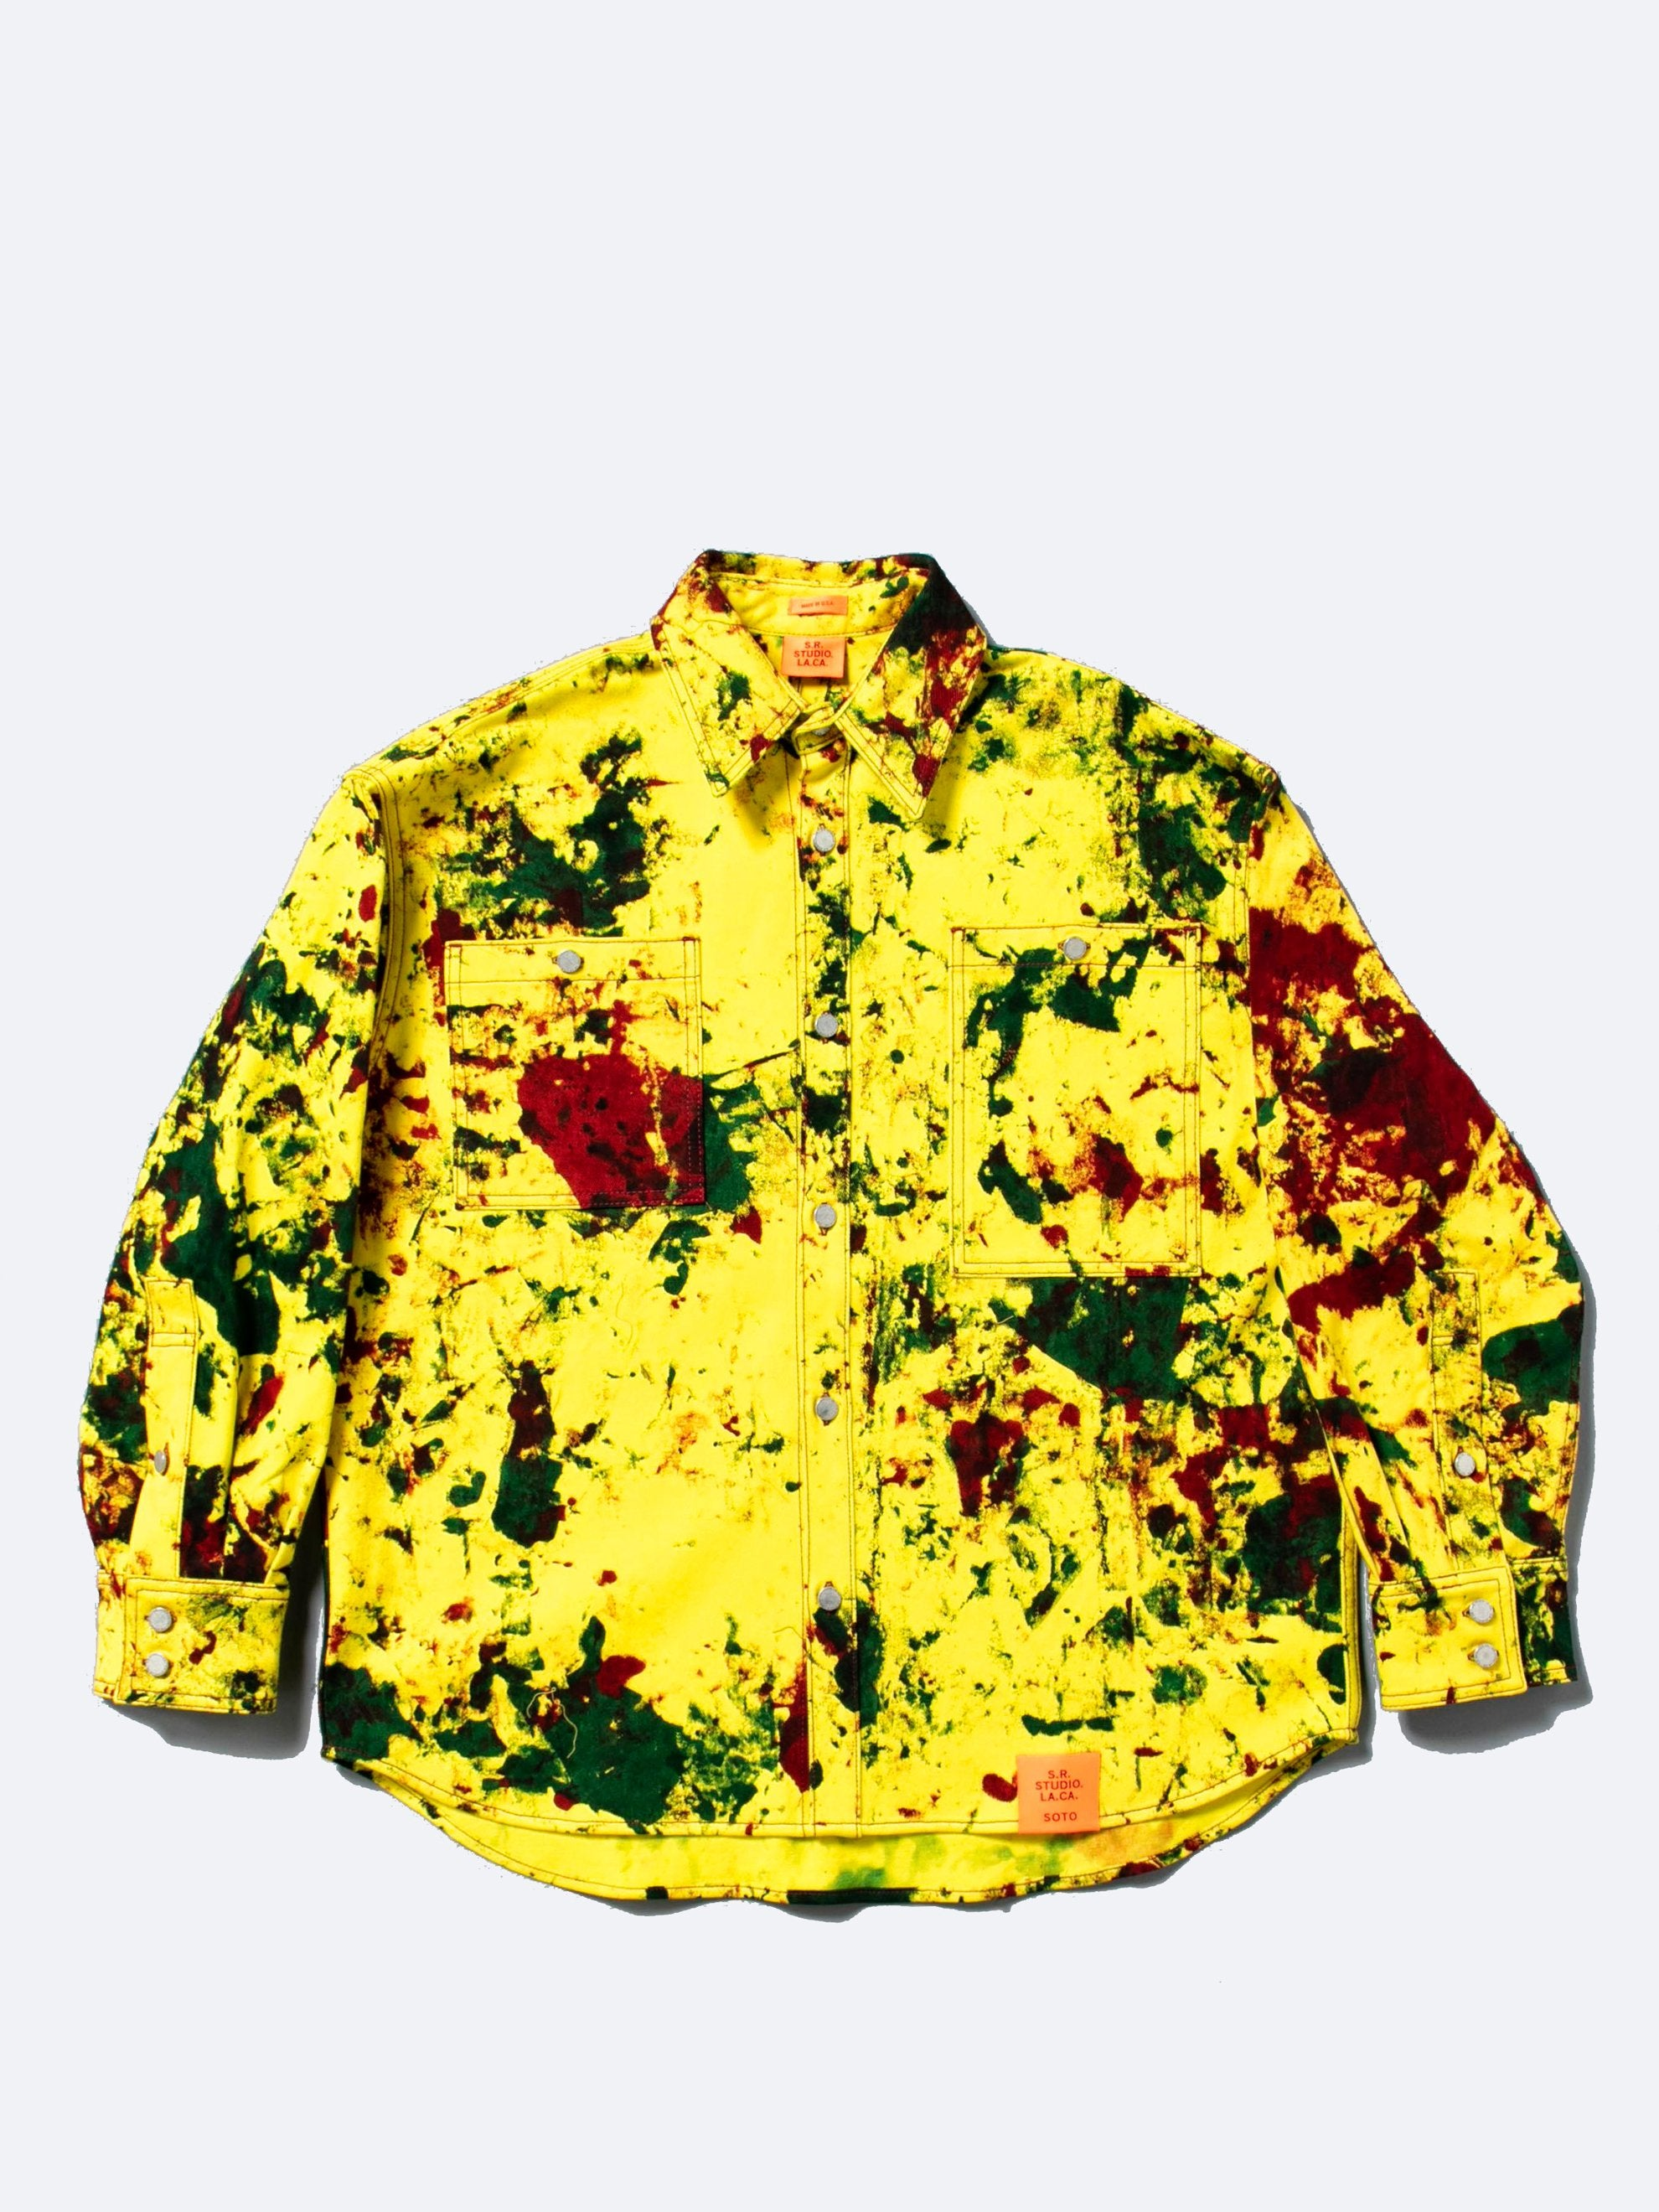 Hand-Dyed Y.R.G. Soto Oversized Long Sleeve Button Down Shirt